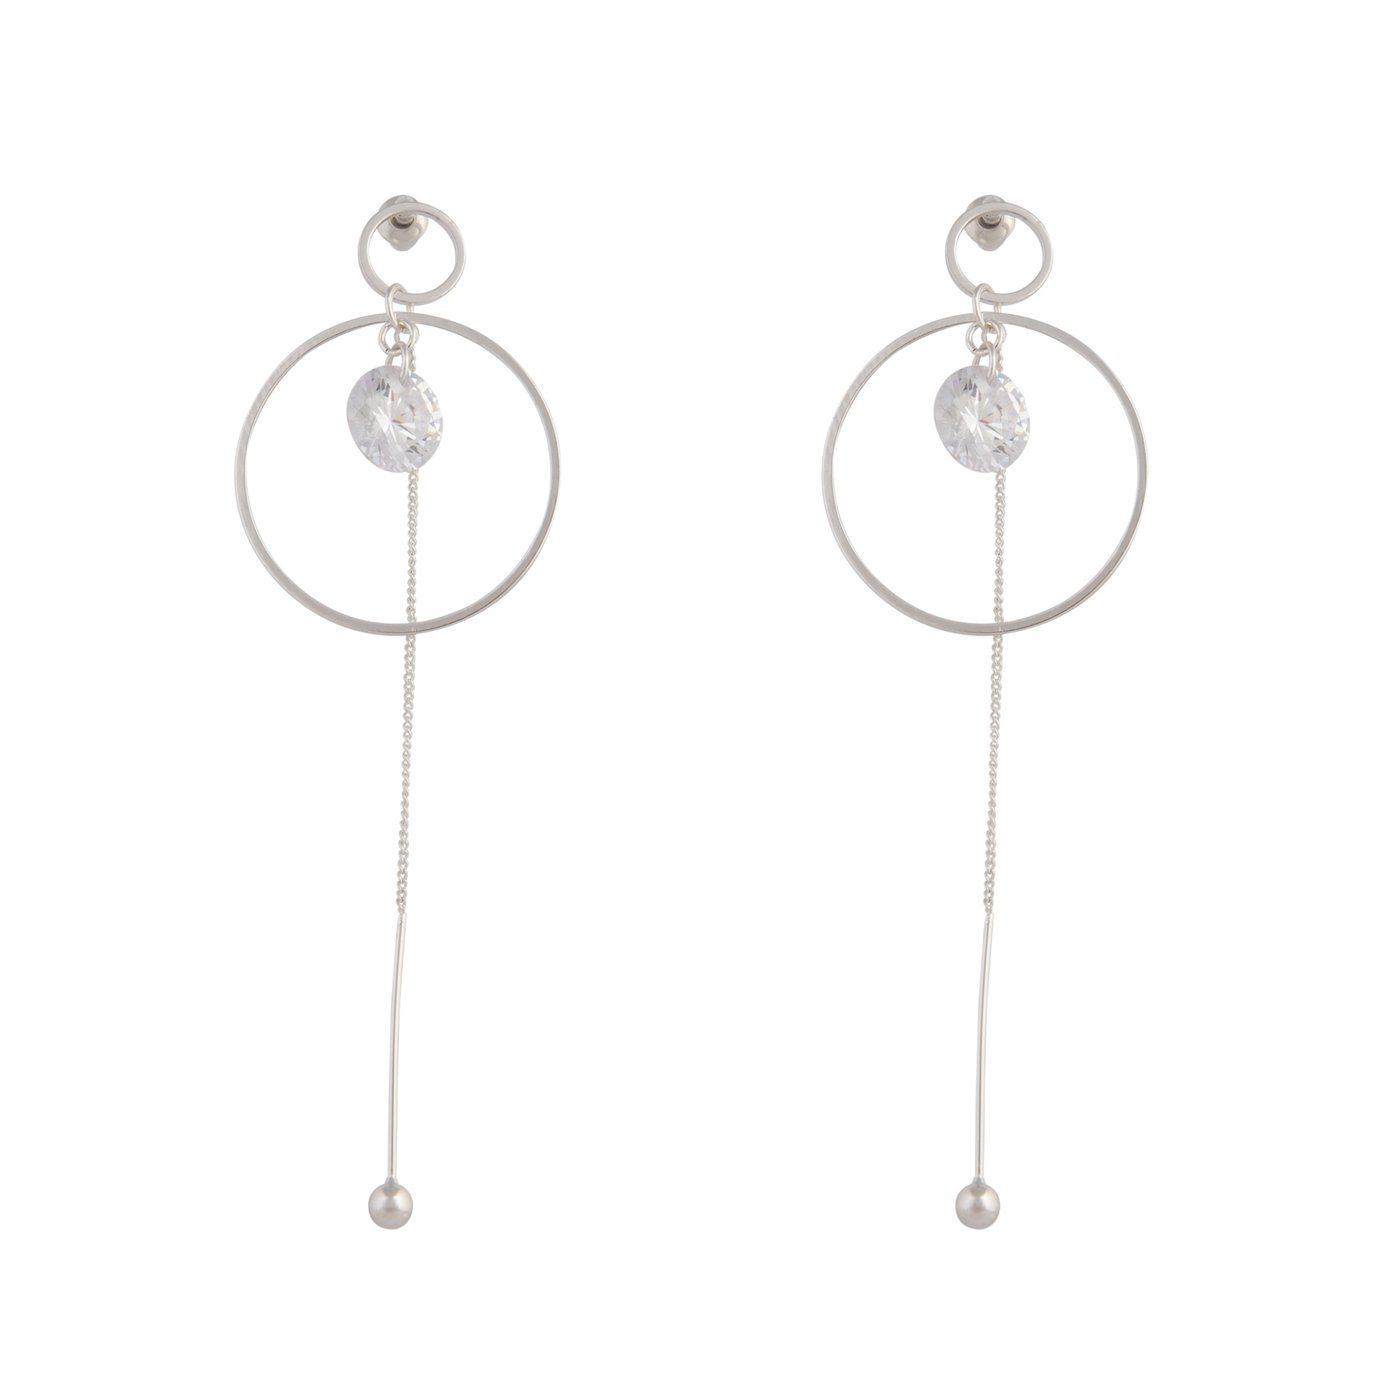 Stunning Solid 925 Sterling Silver Cubic Zirconia Infinity Earring Rose Gold